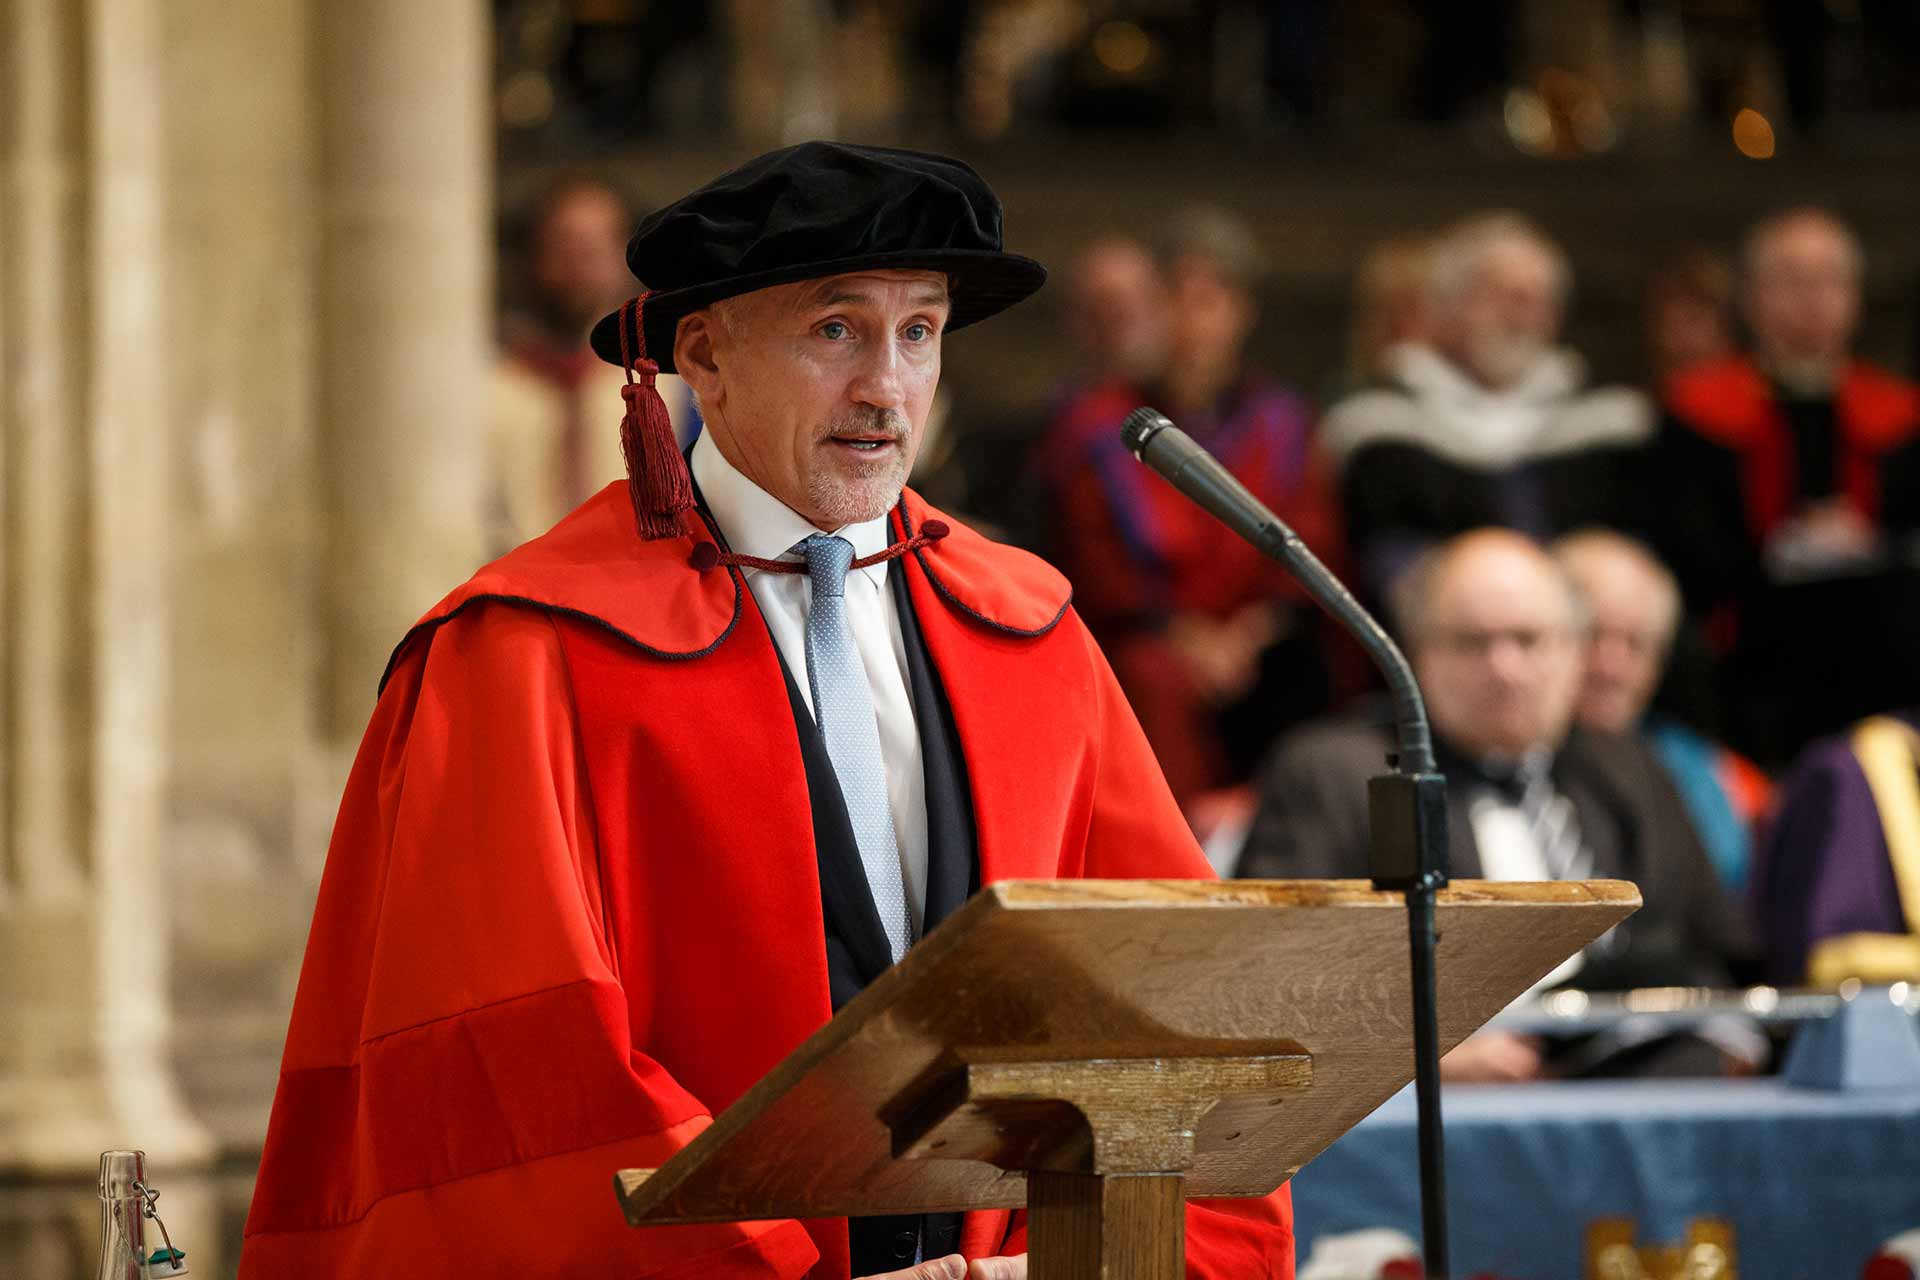 Barry McGuigan speaking at ceremony for honorary doctorate